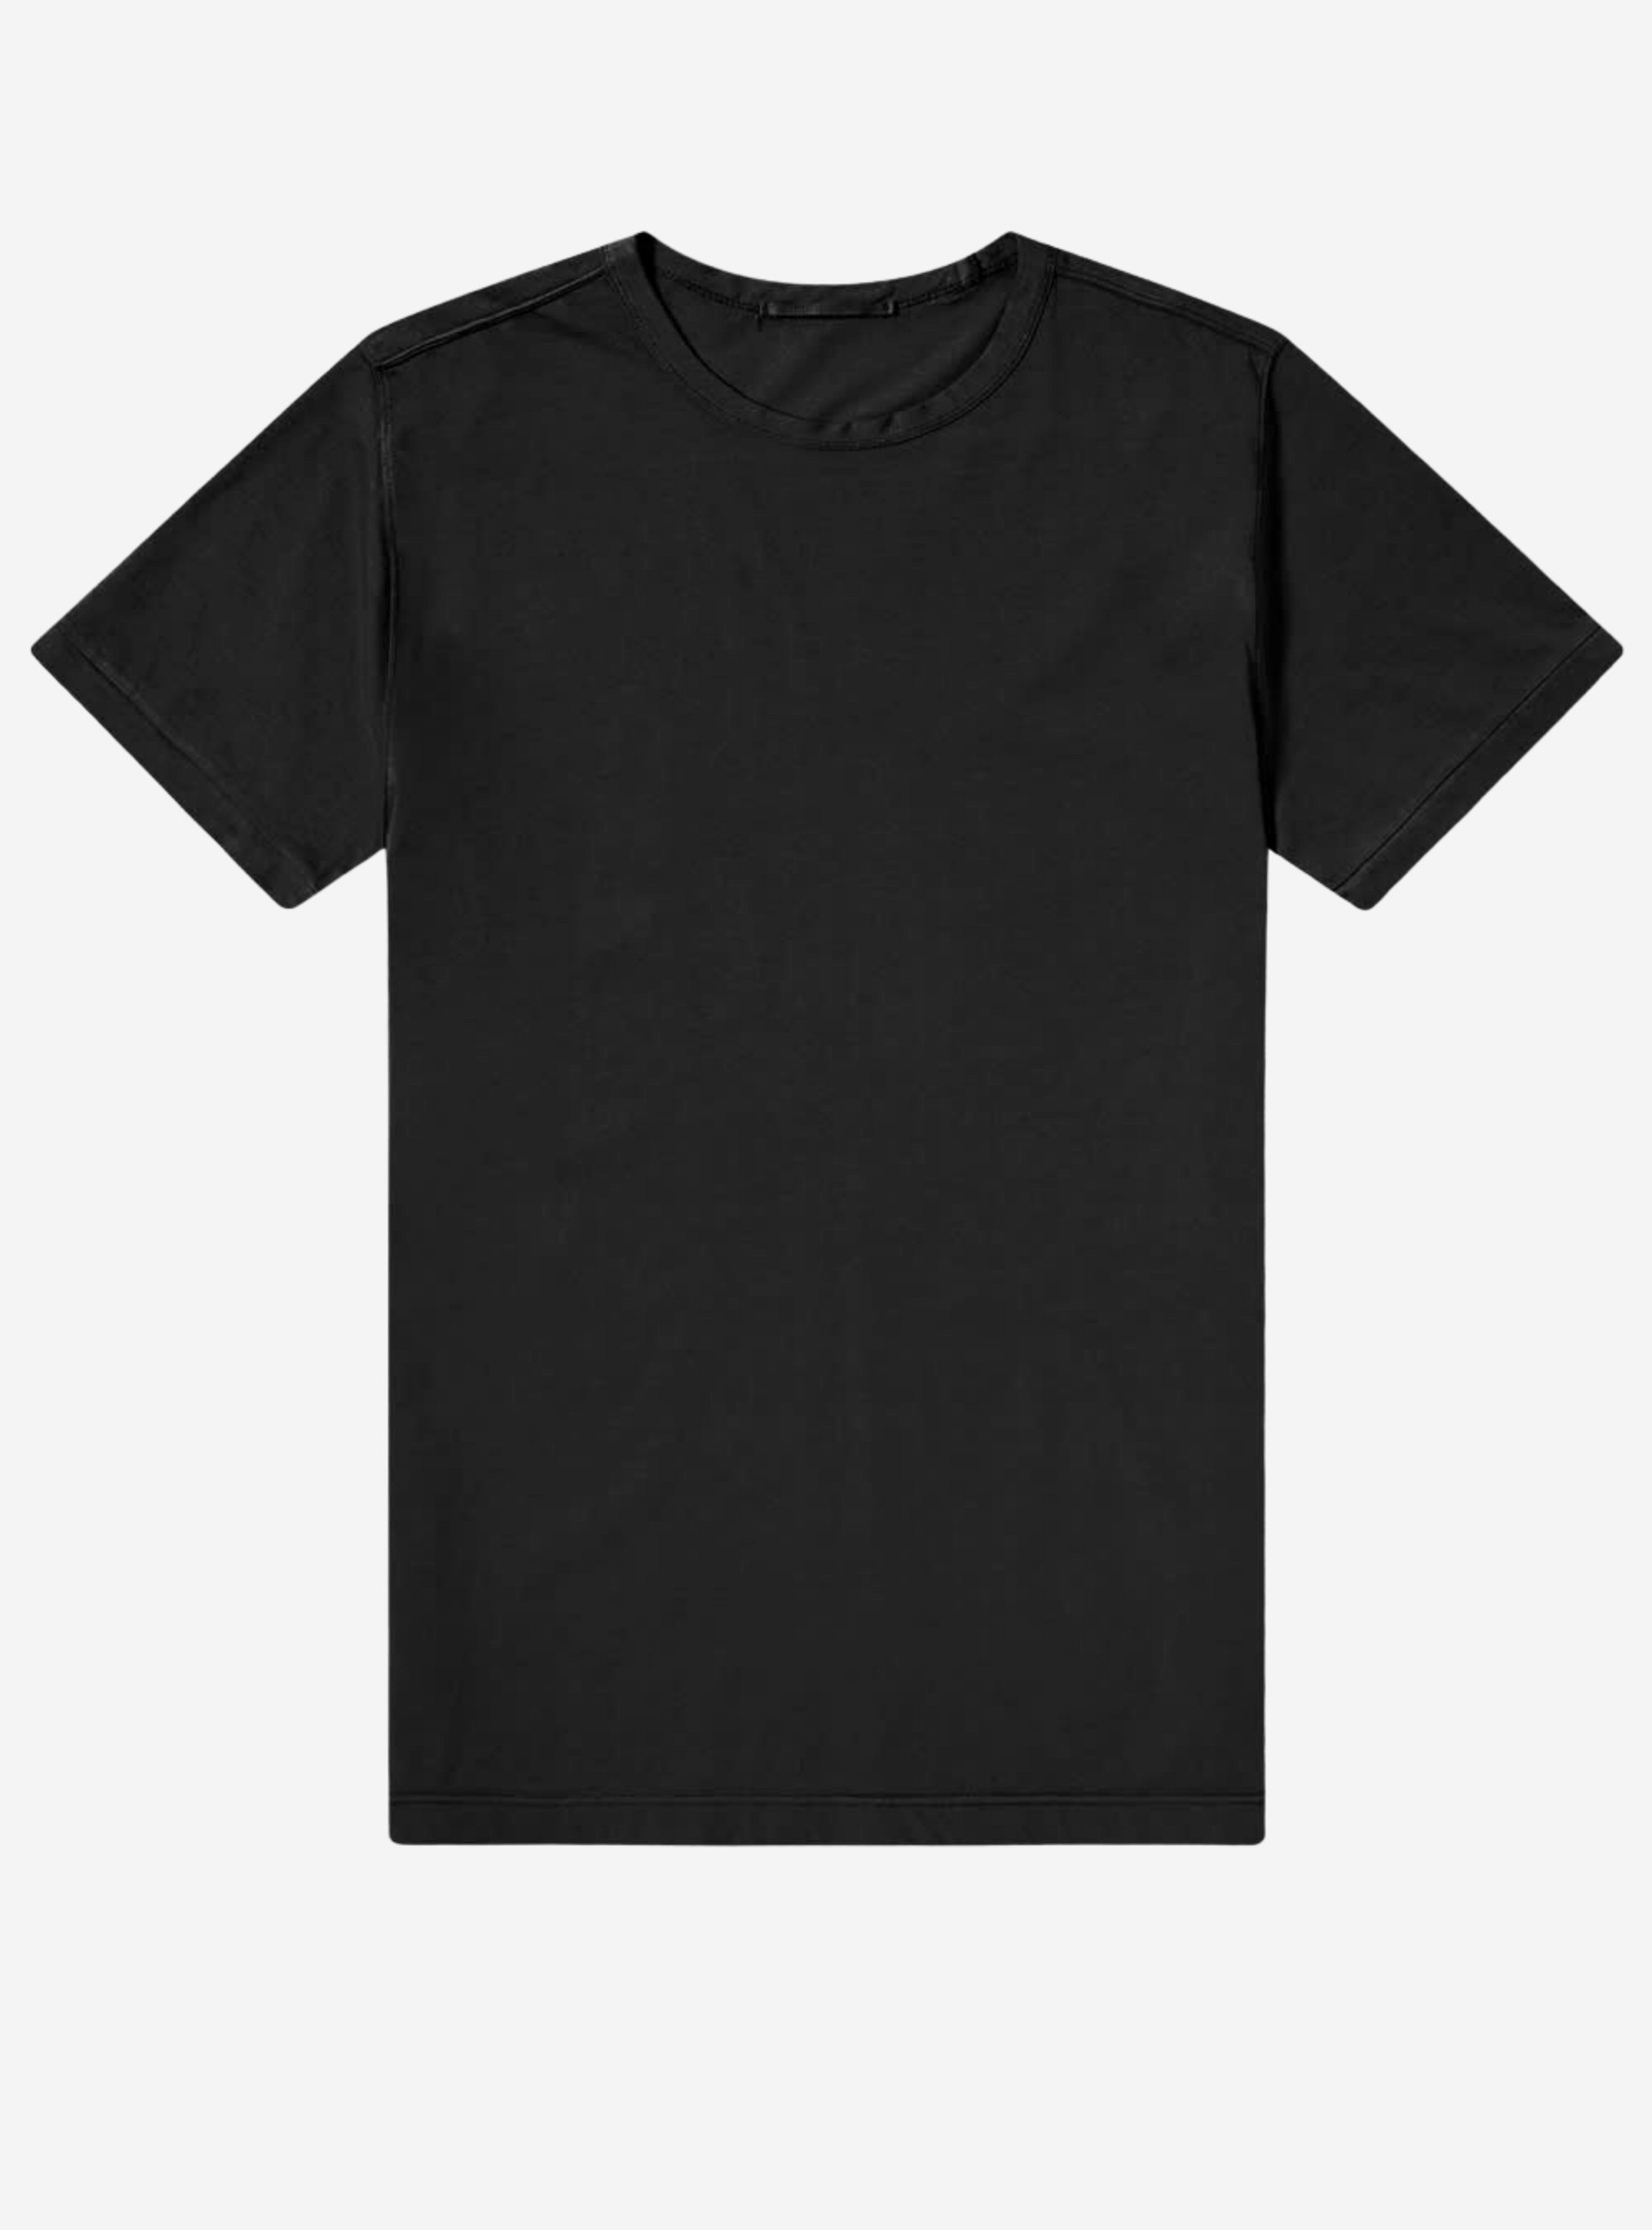 TEN C - BACK LOGO TEE - Black - TEN C